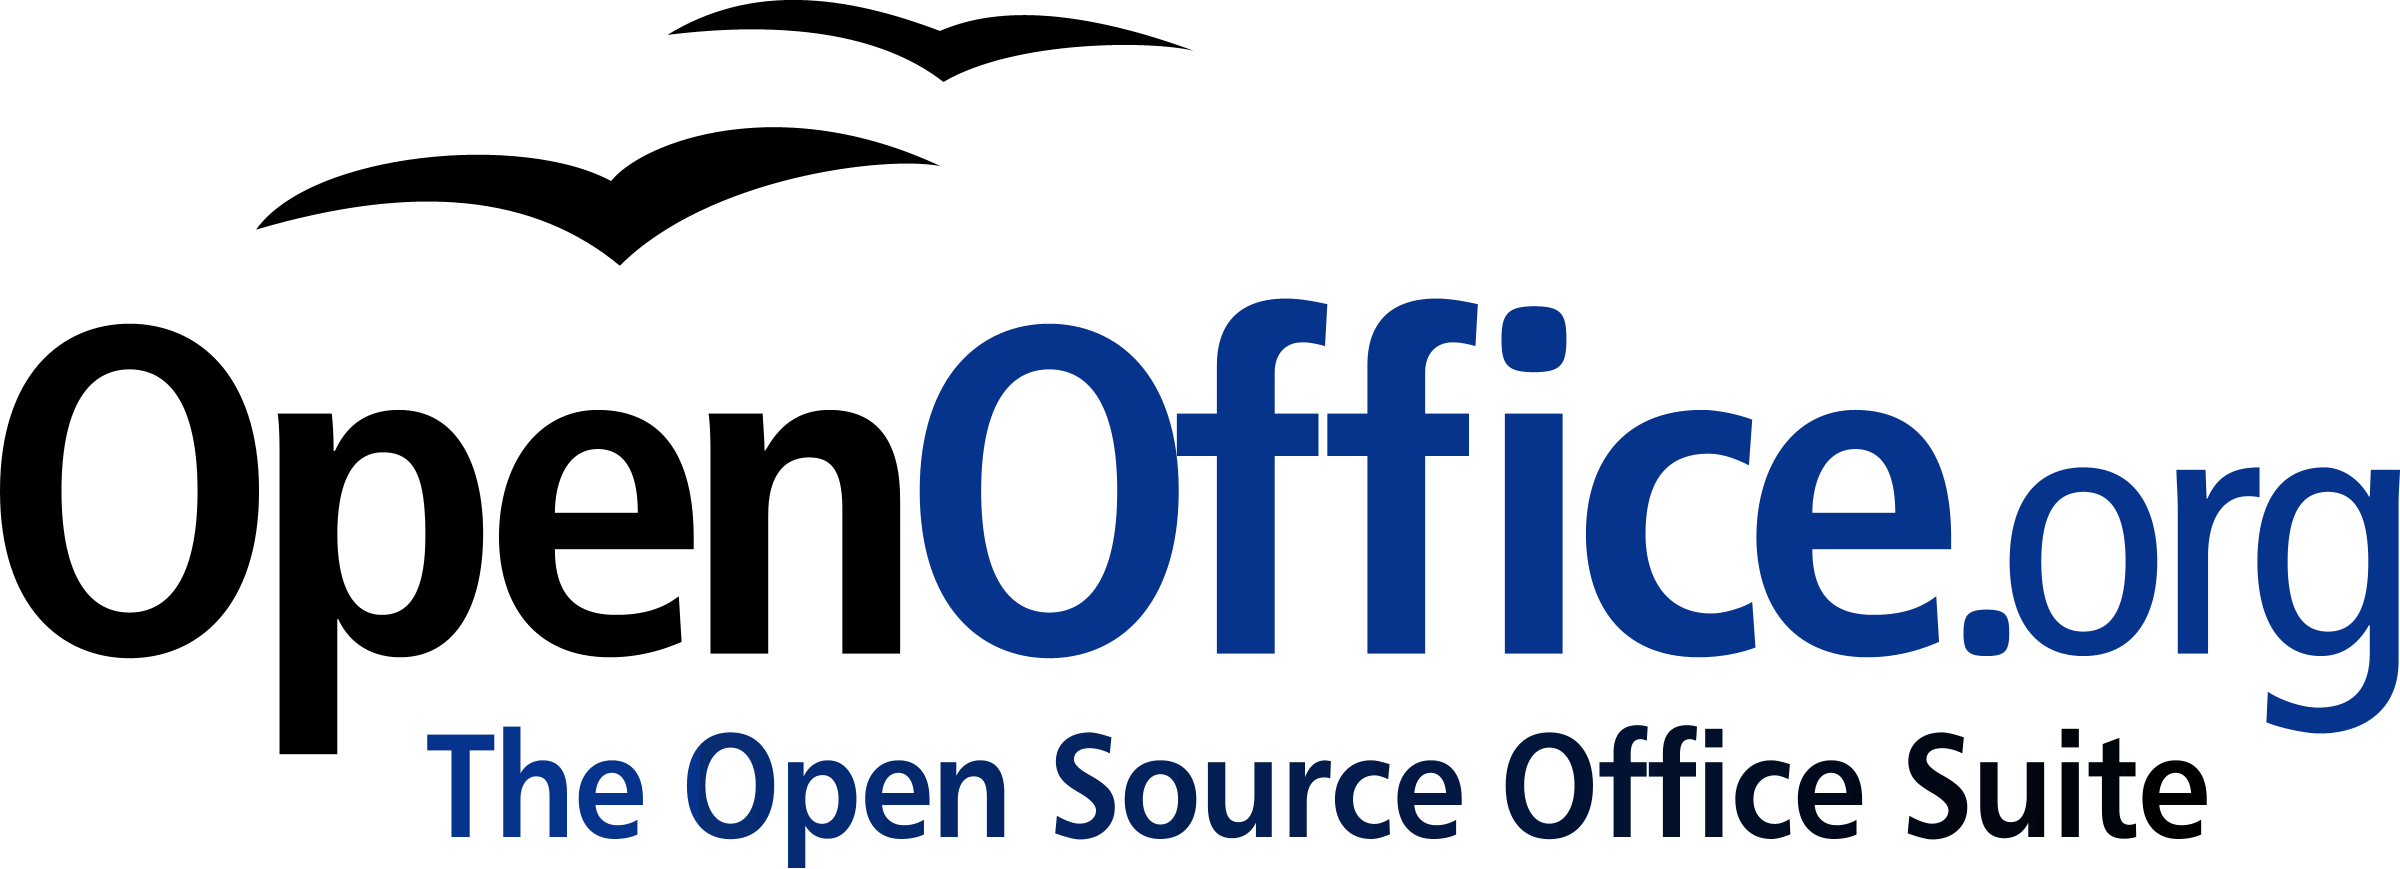 Drawing toolbars open office. Openoffice org writer for